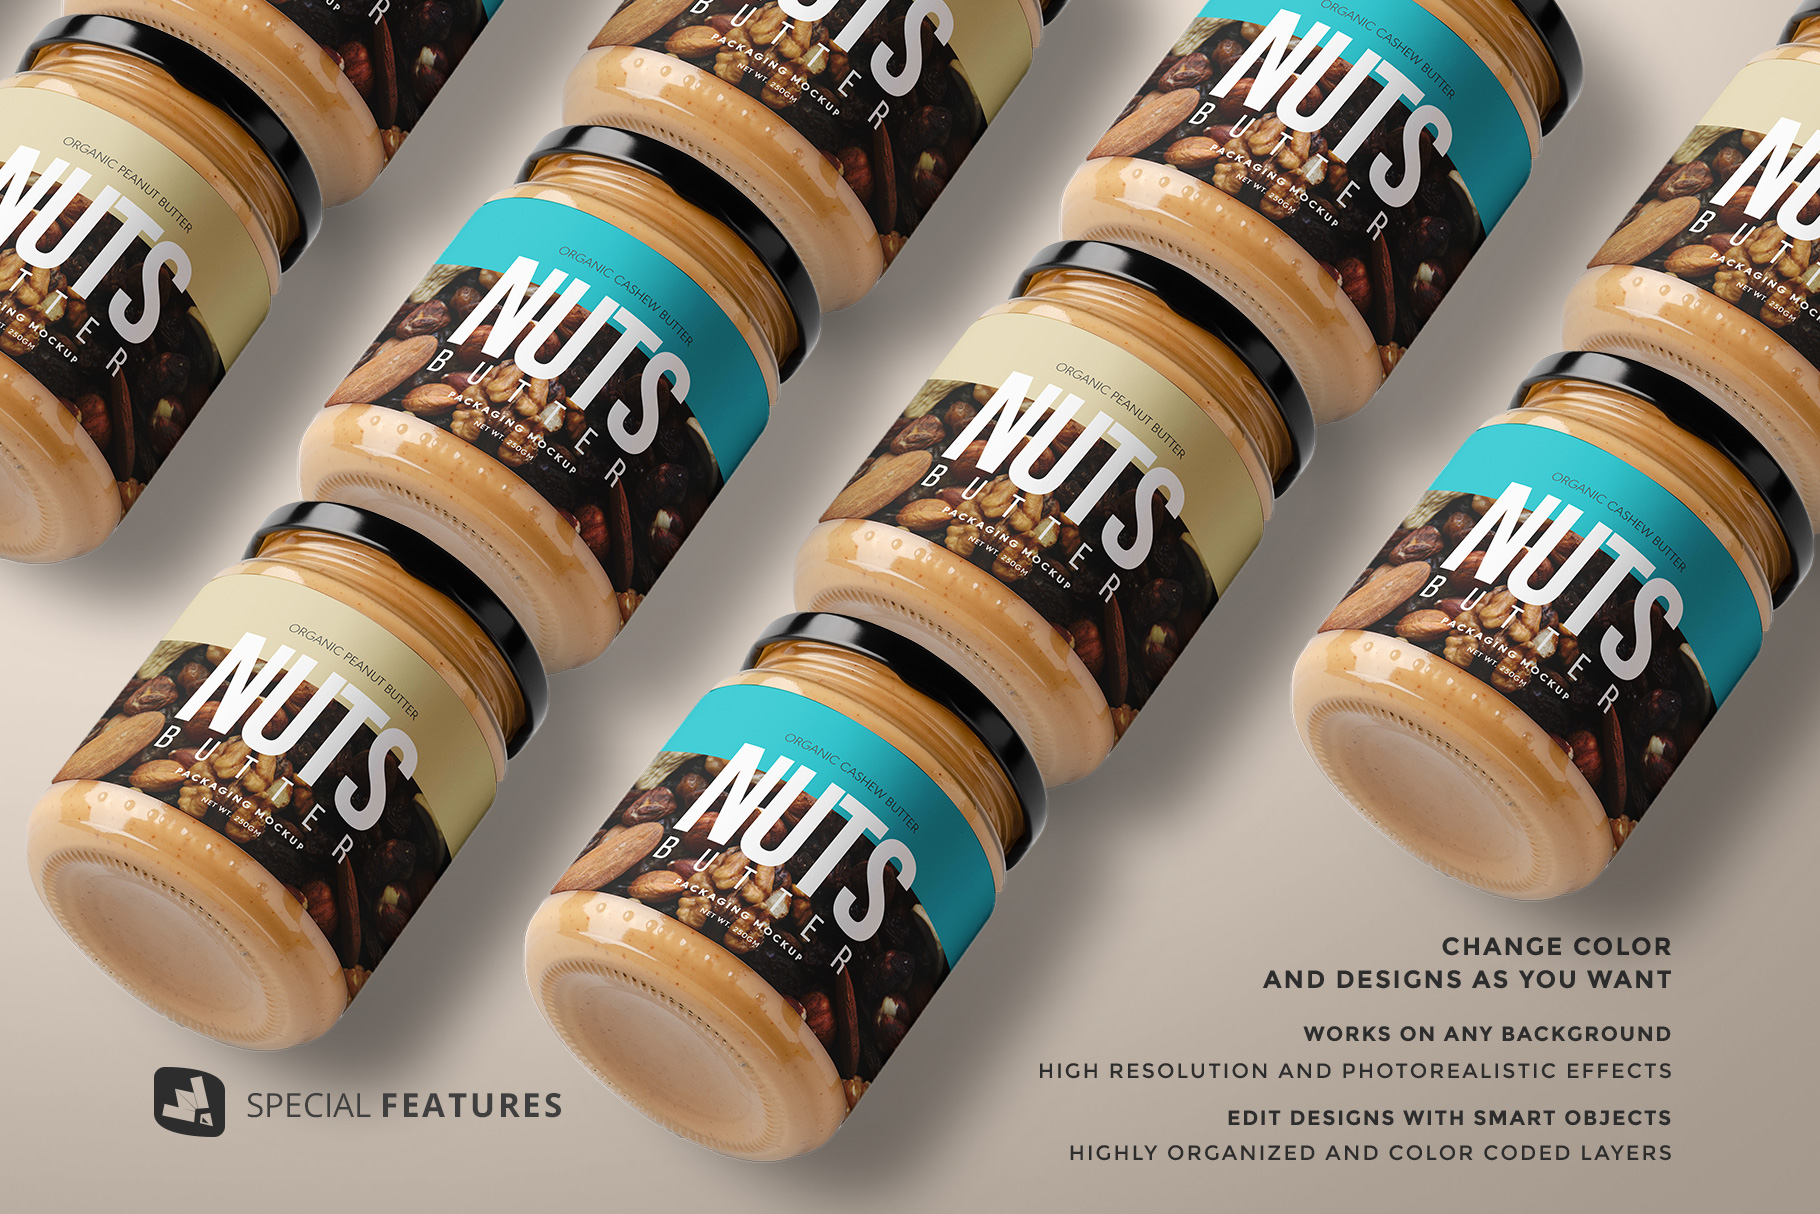 features of the organic nut butter packaging mockup